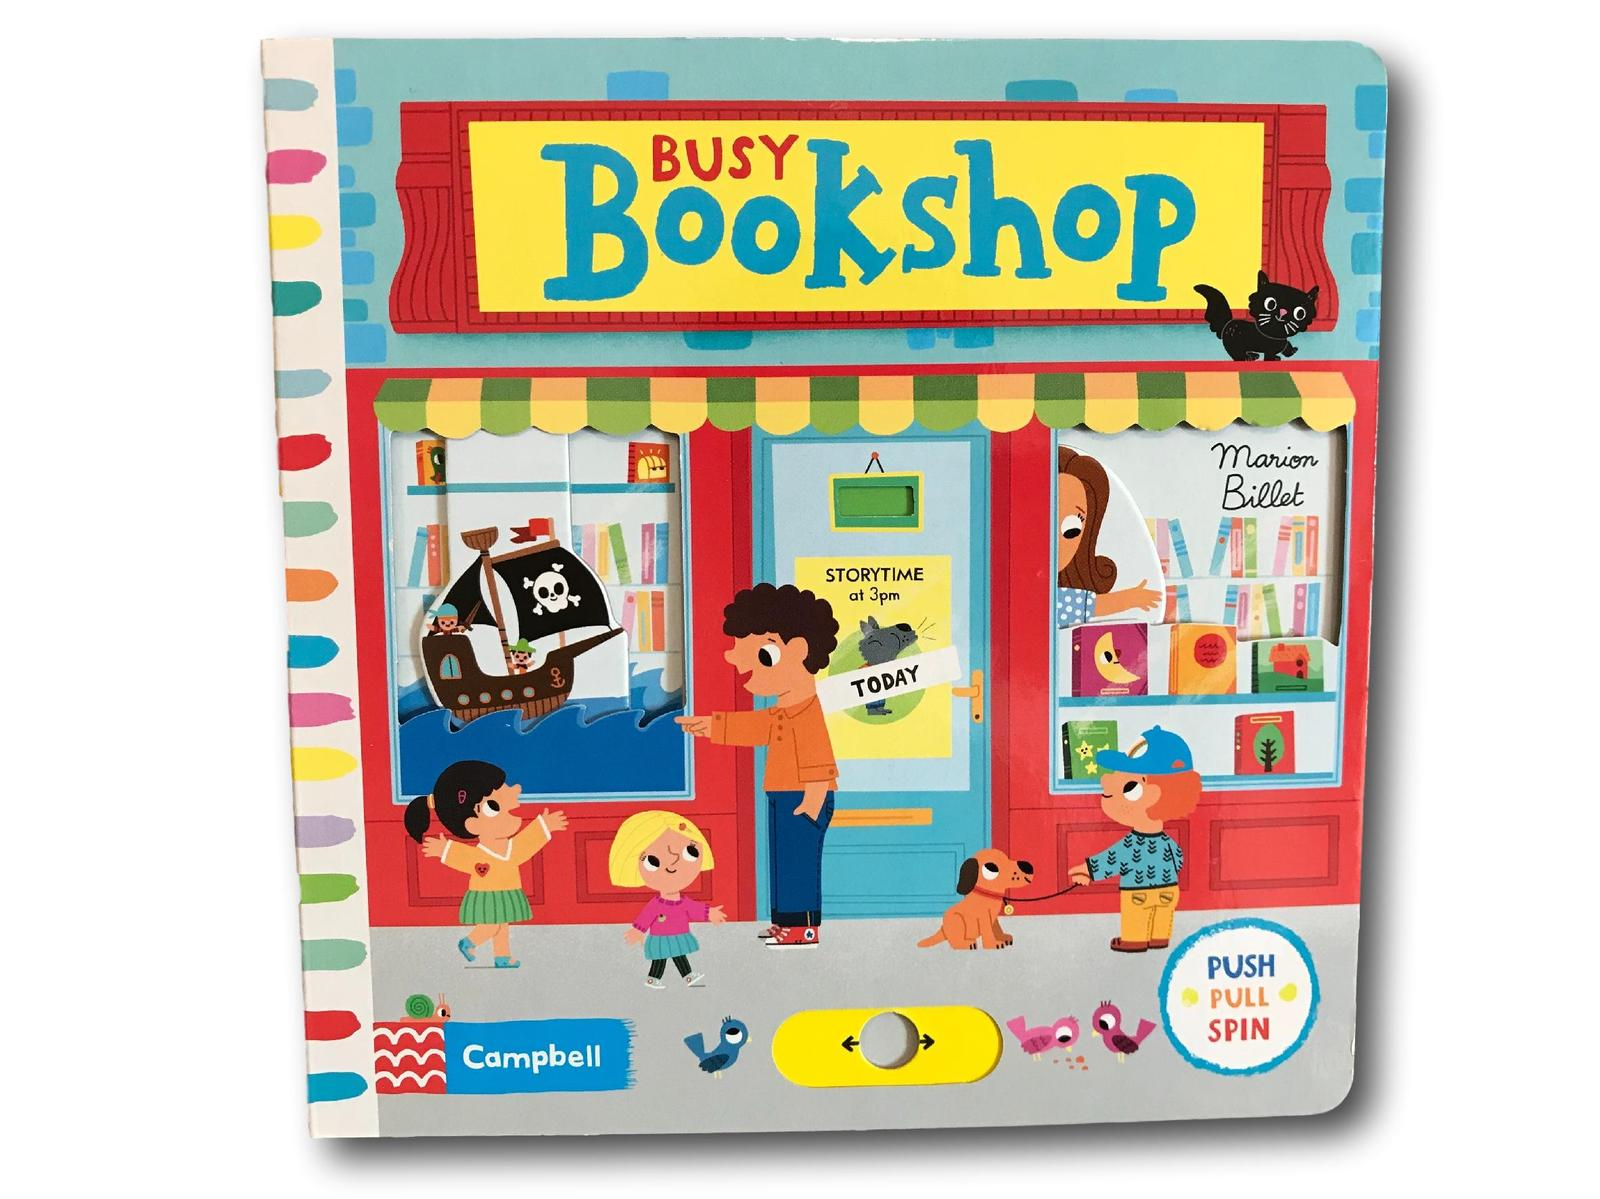 Campbell Busy Bookshop Kids Children Baby Push Pull Slide Board Book - $8.49